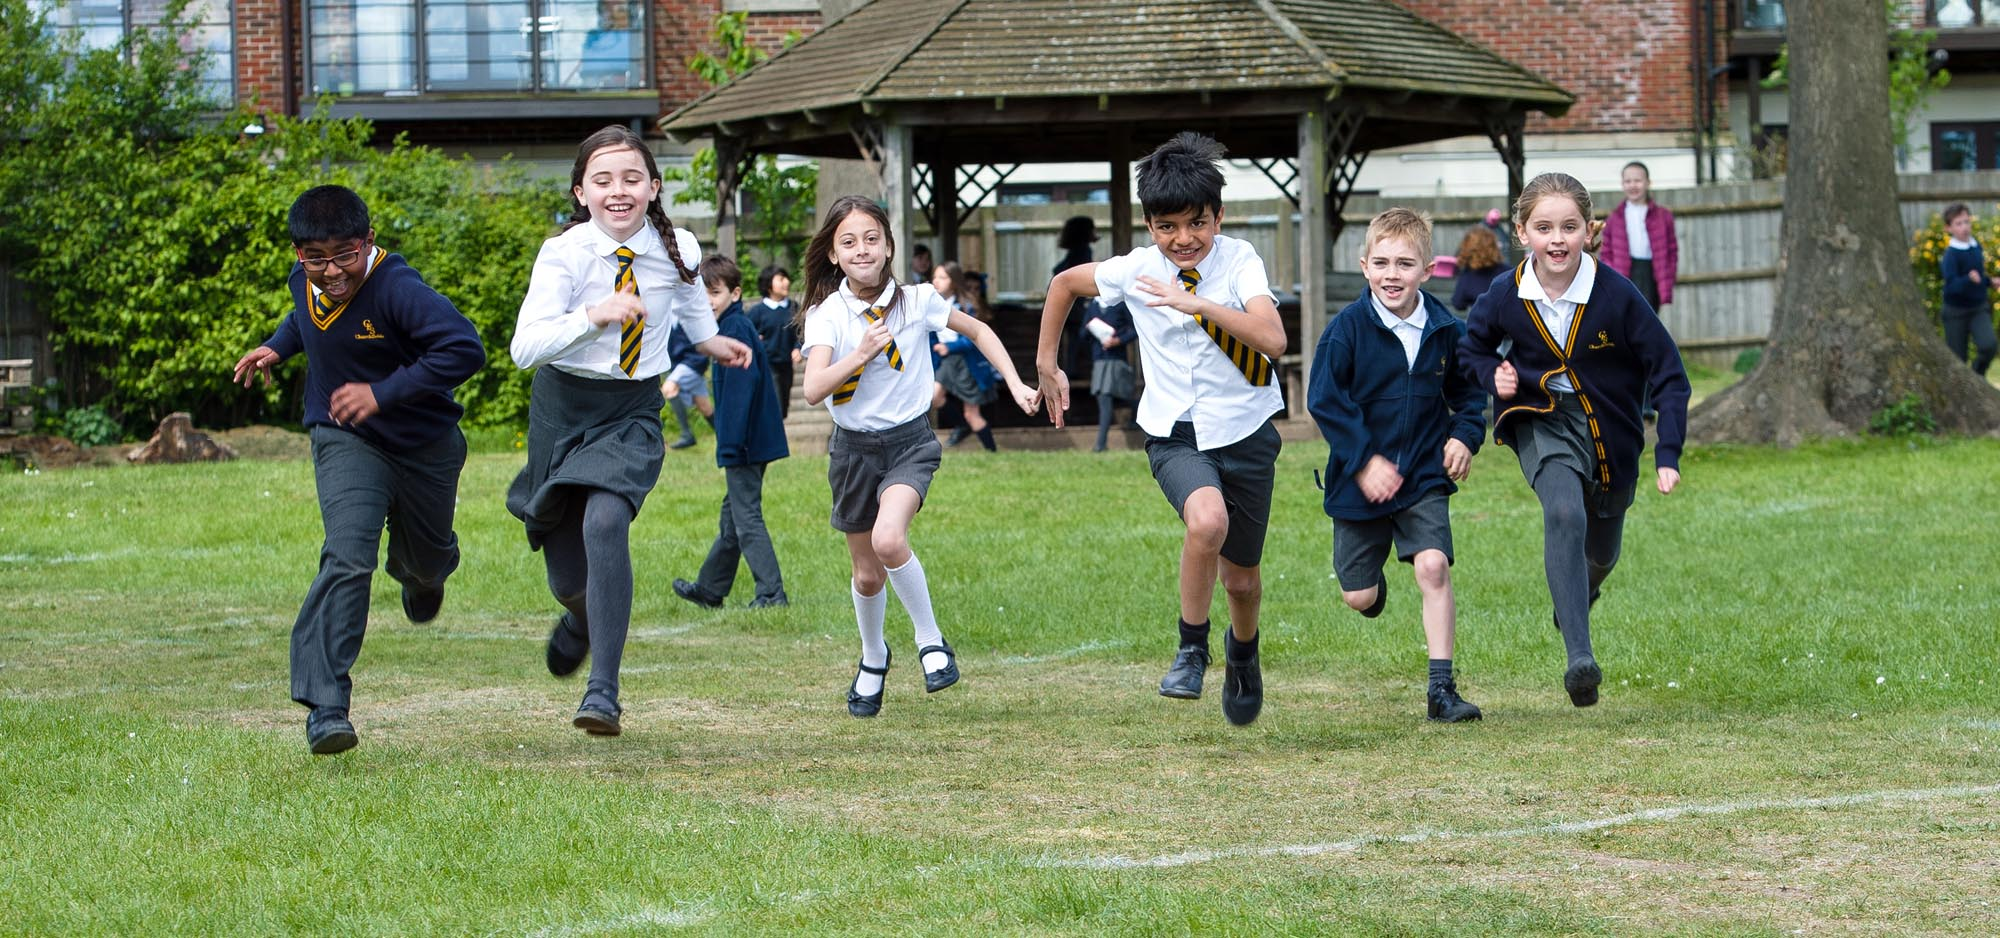 Children in uniform running